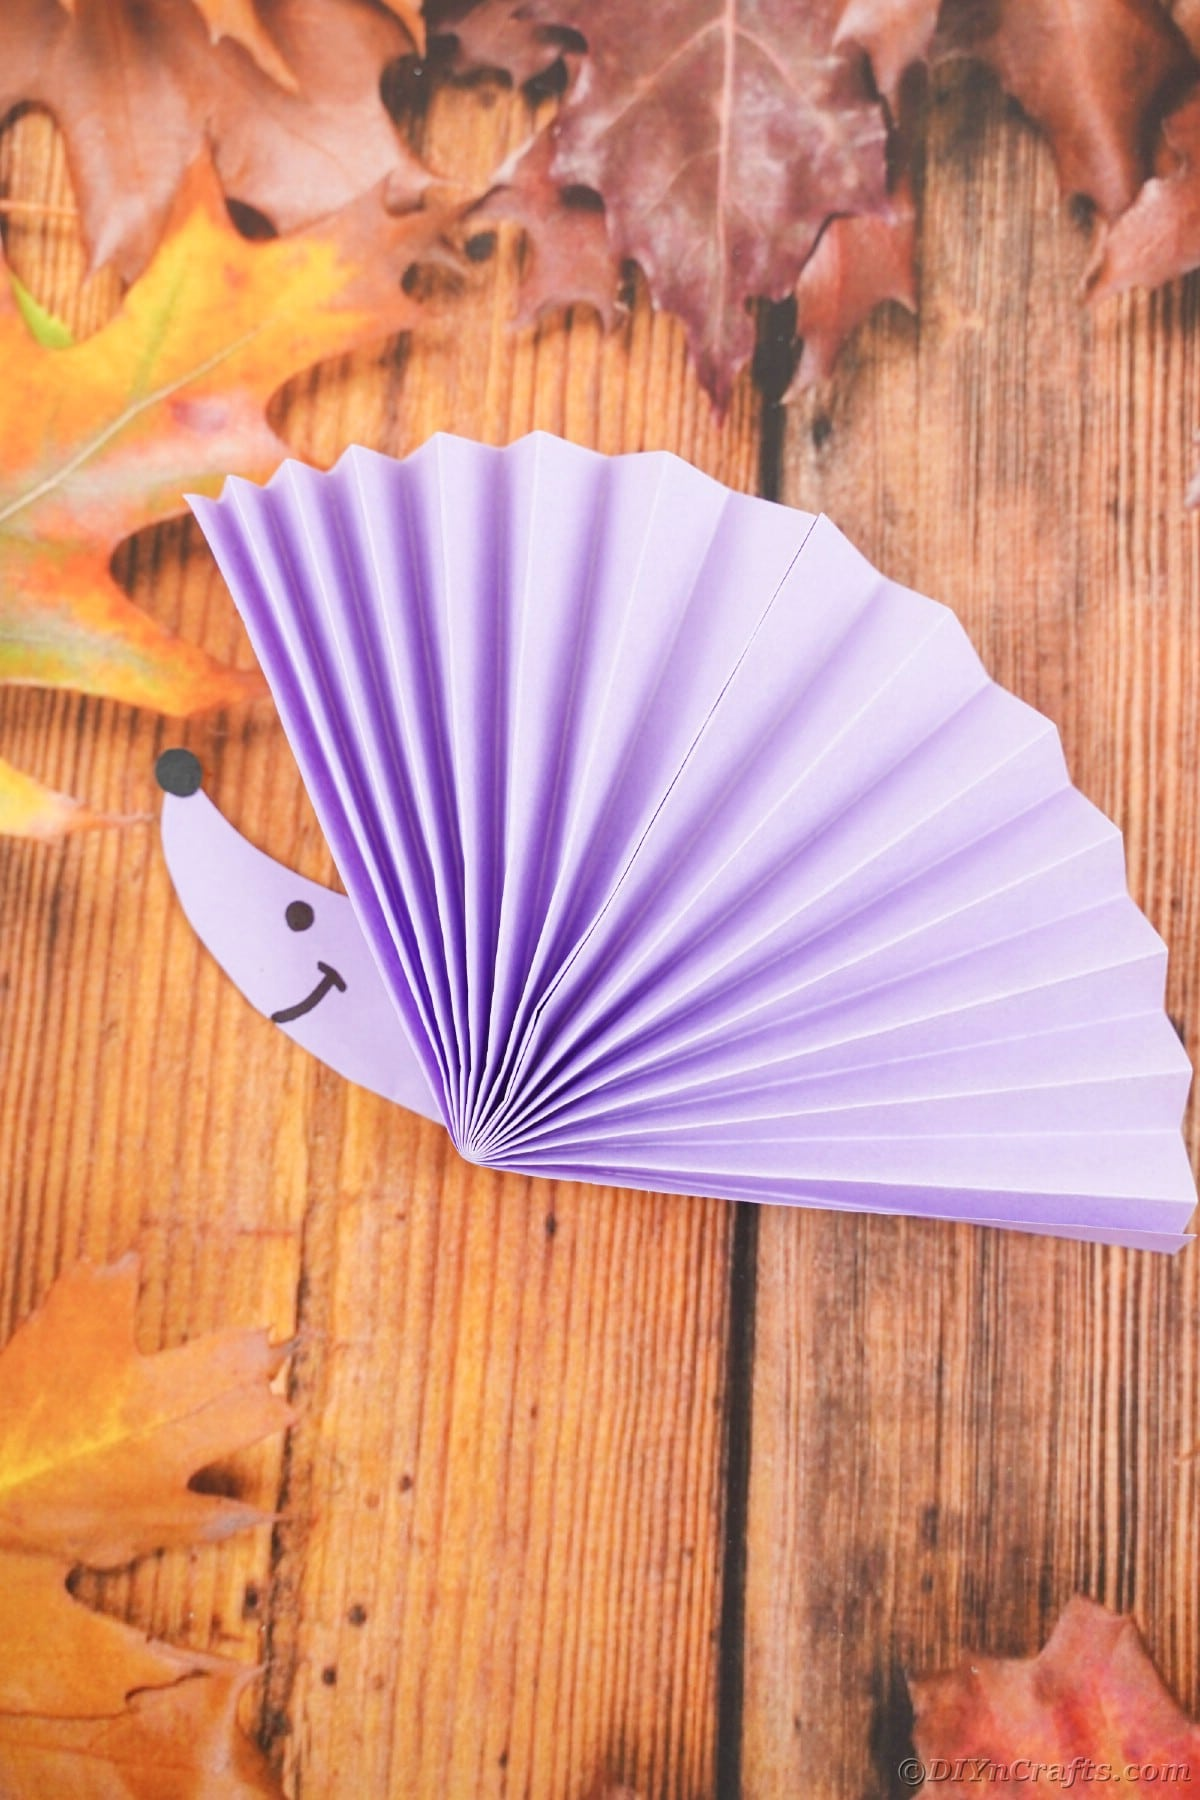 Paper fan with hedgehog face on wooden surface